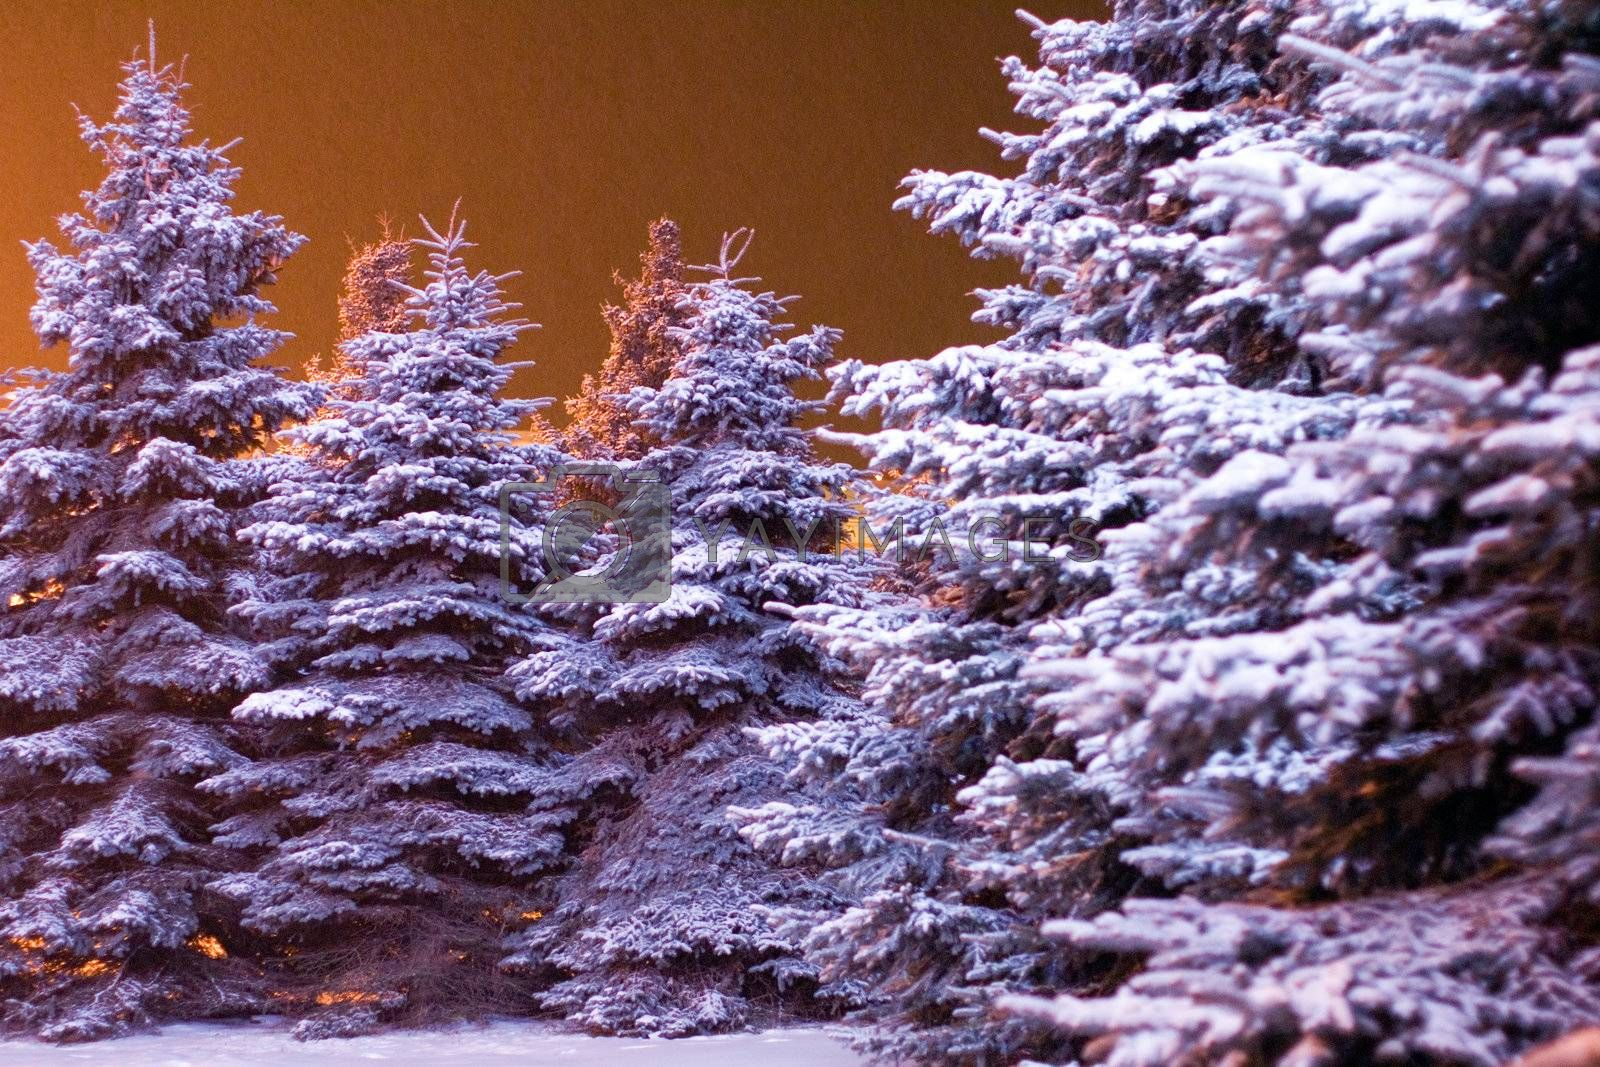 Blue firs covered with snow in the warm light